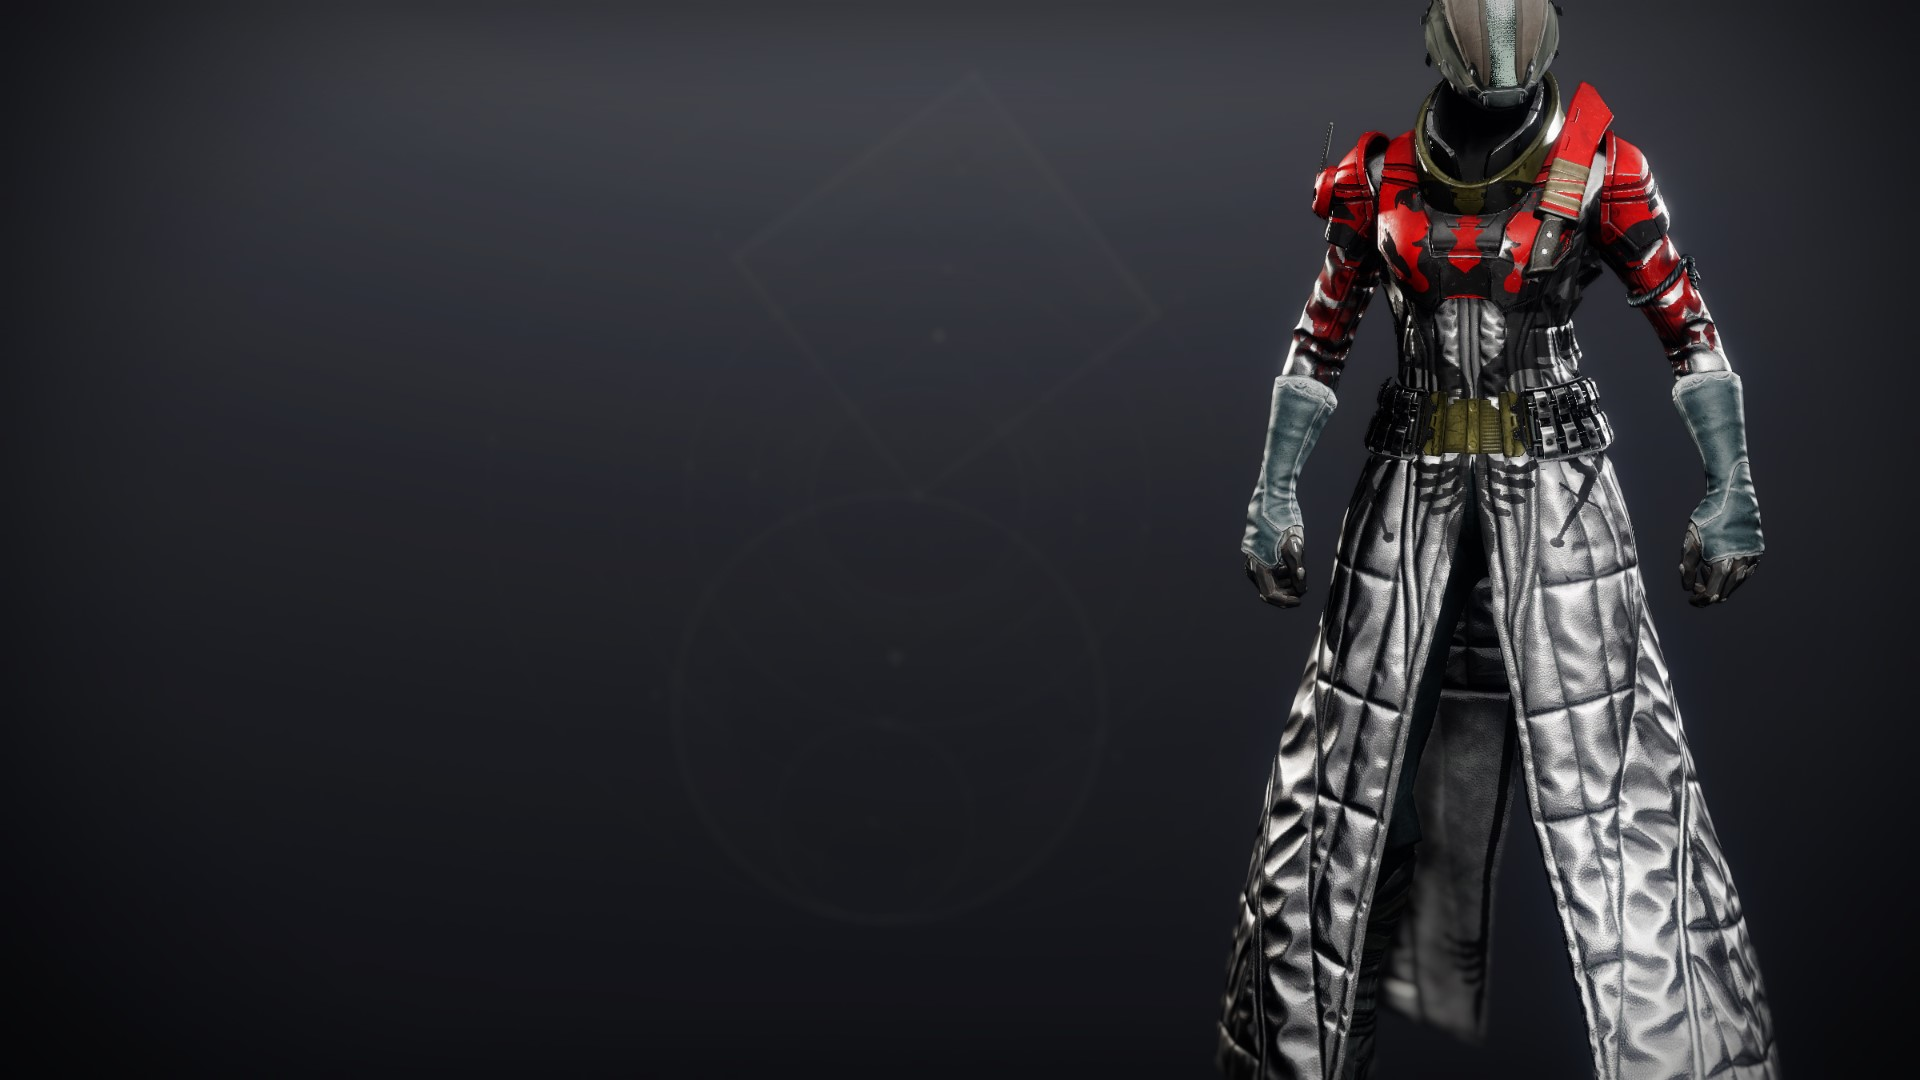 An in-game render of the Cinder Pinion Robes.